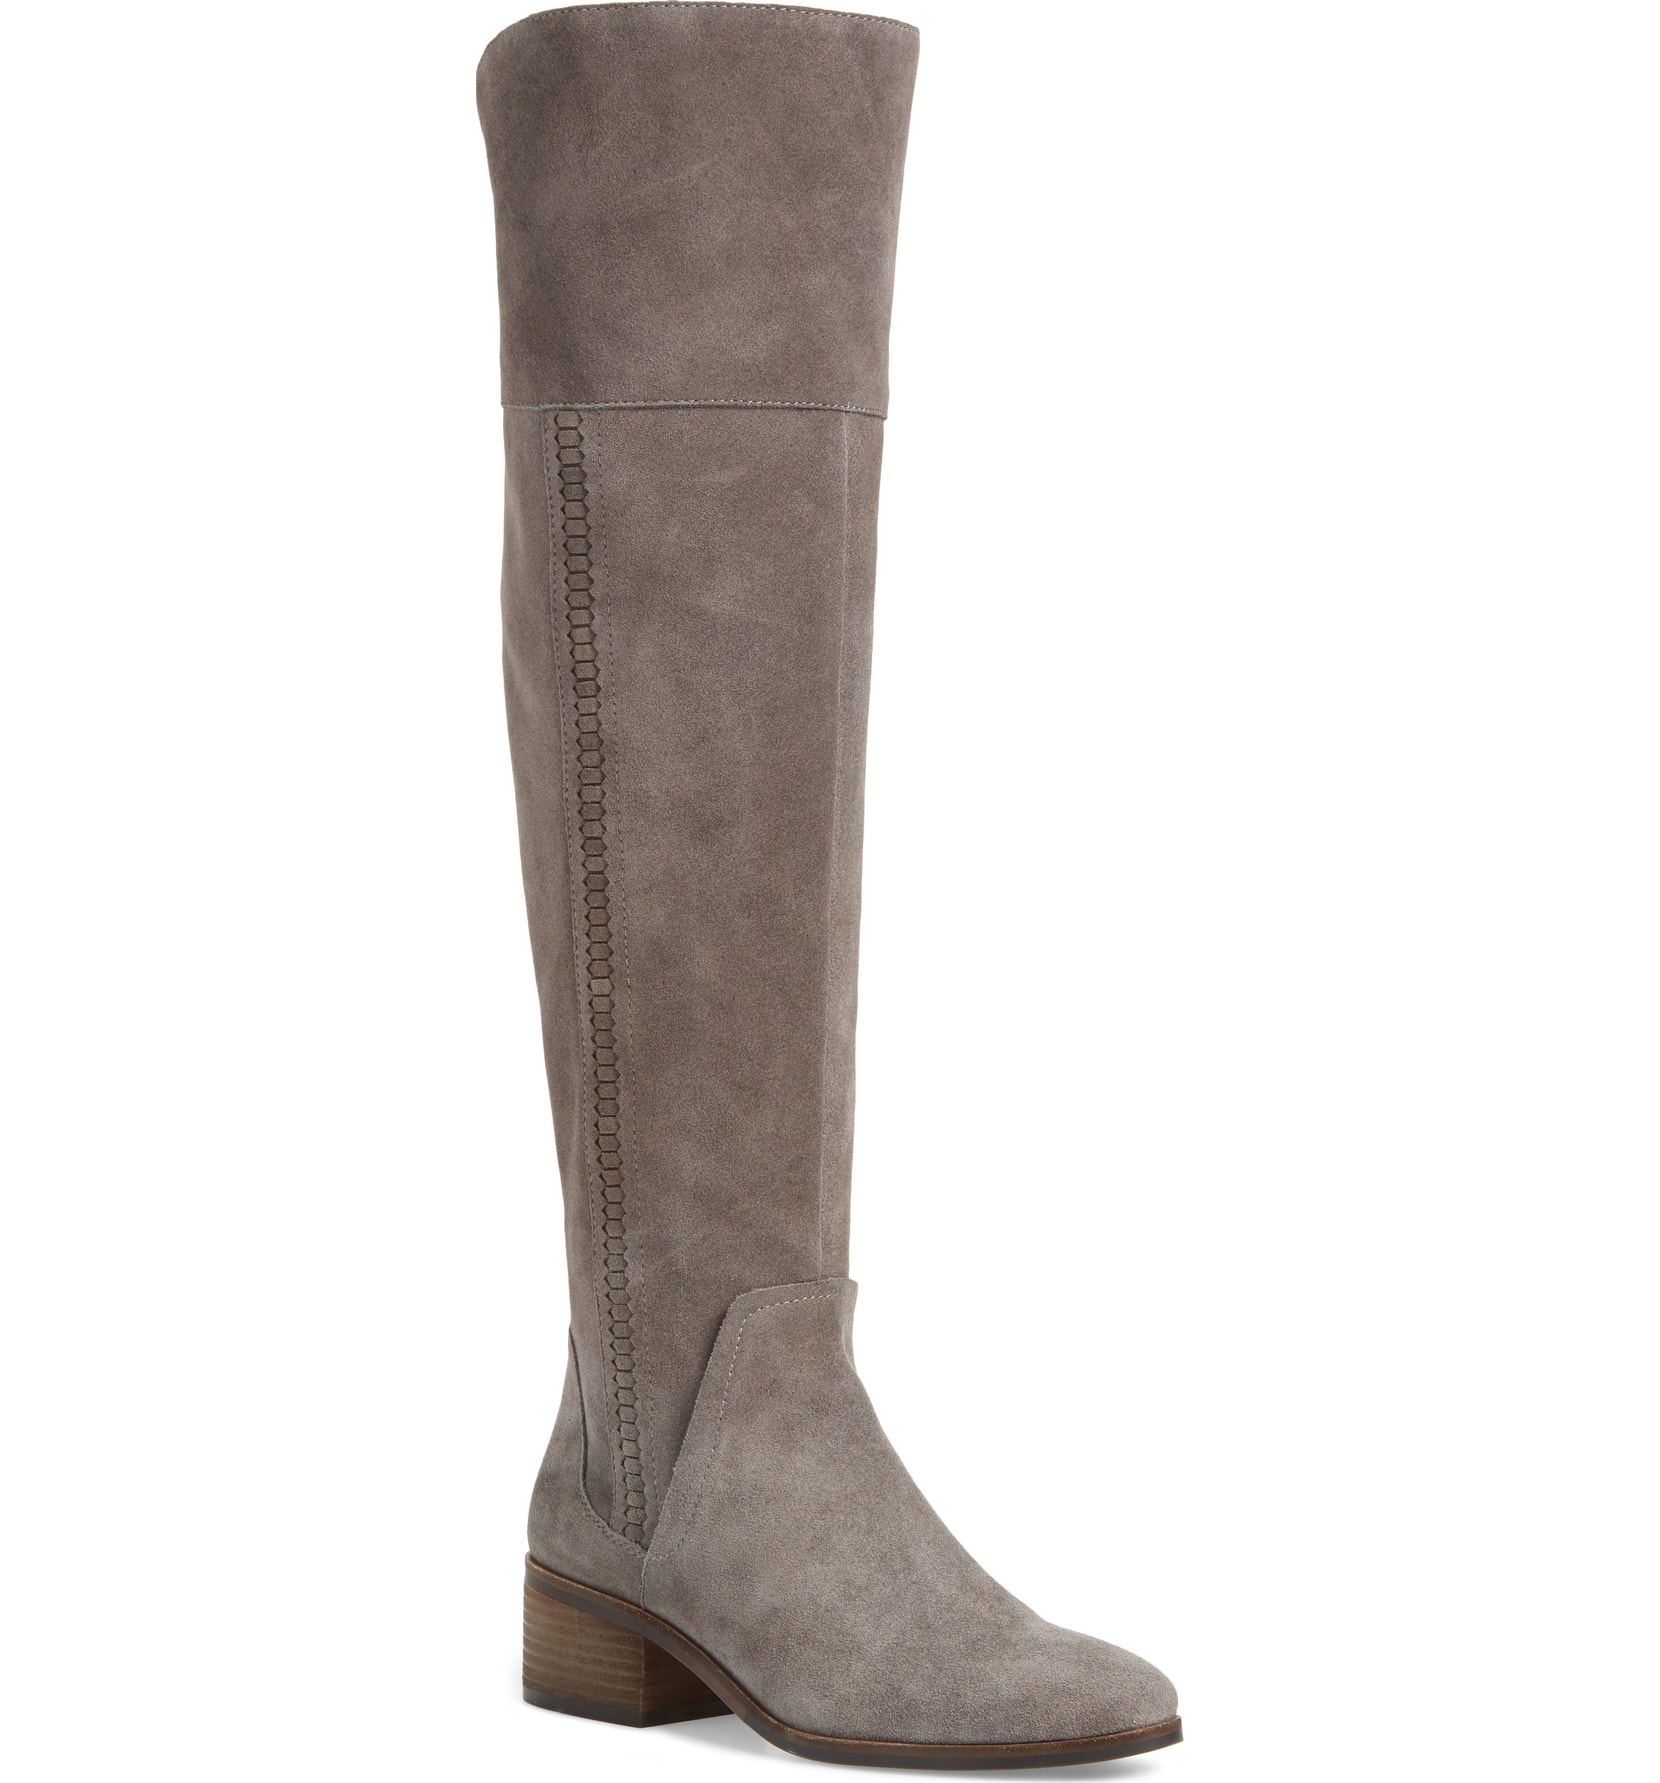 Vince Camuto Kochelda Over-the-Knee Boot. Sale: $159.90 / After Sale: $239.95. (Image: Nordstrom){ }